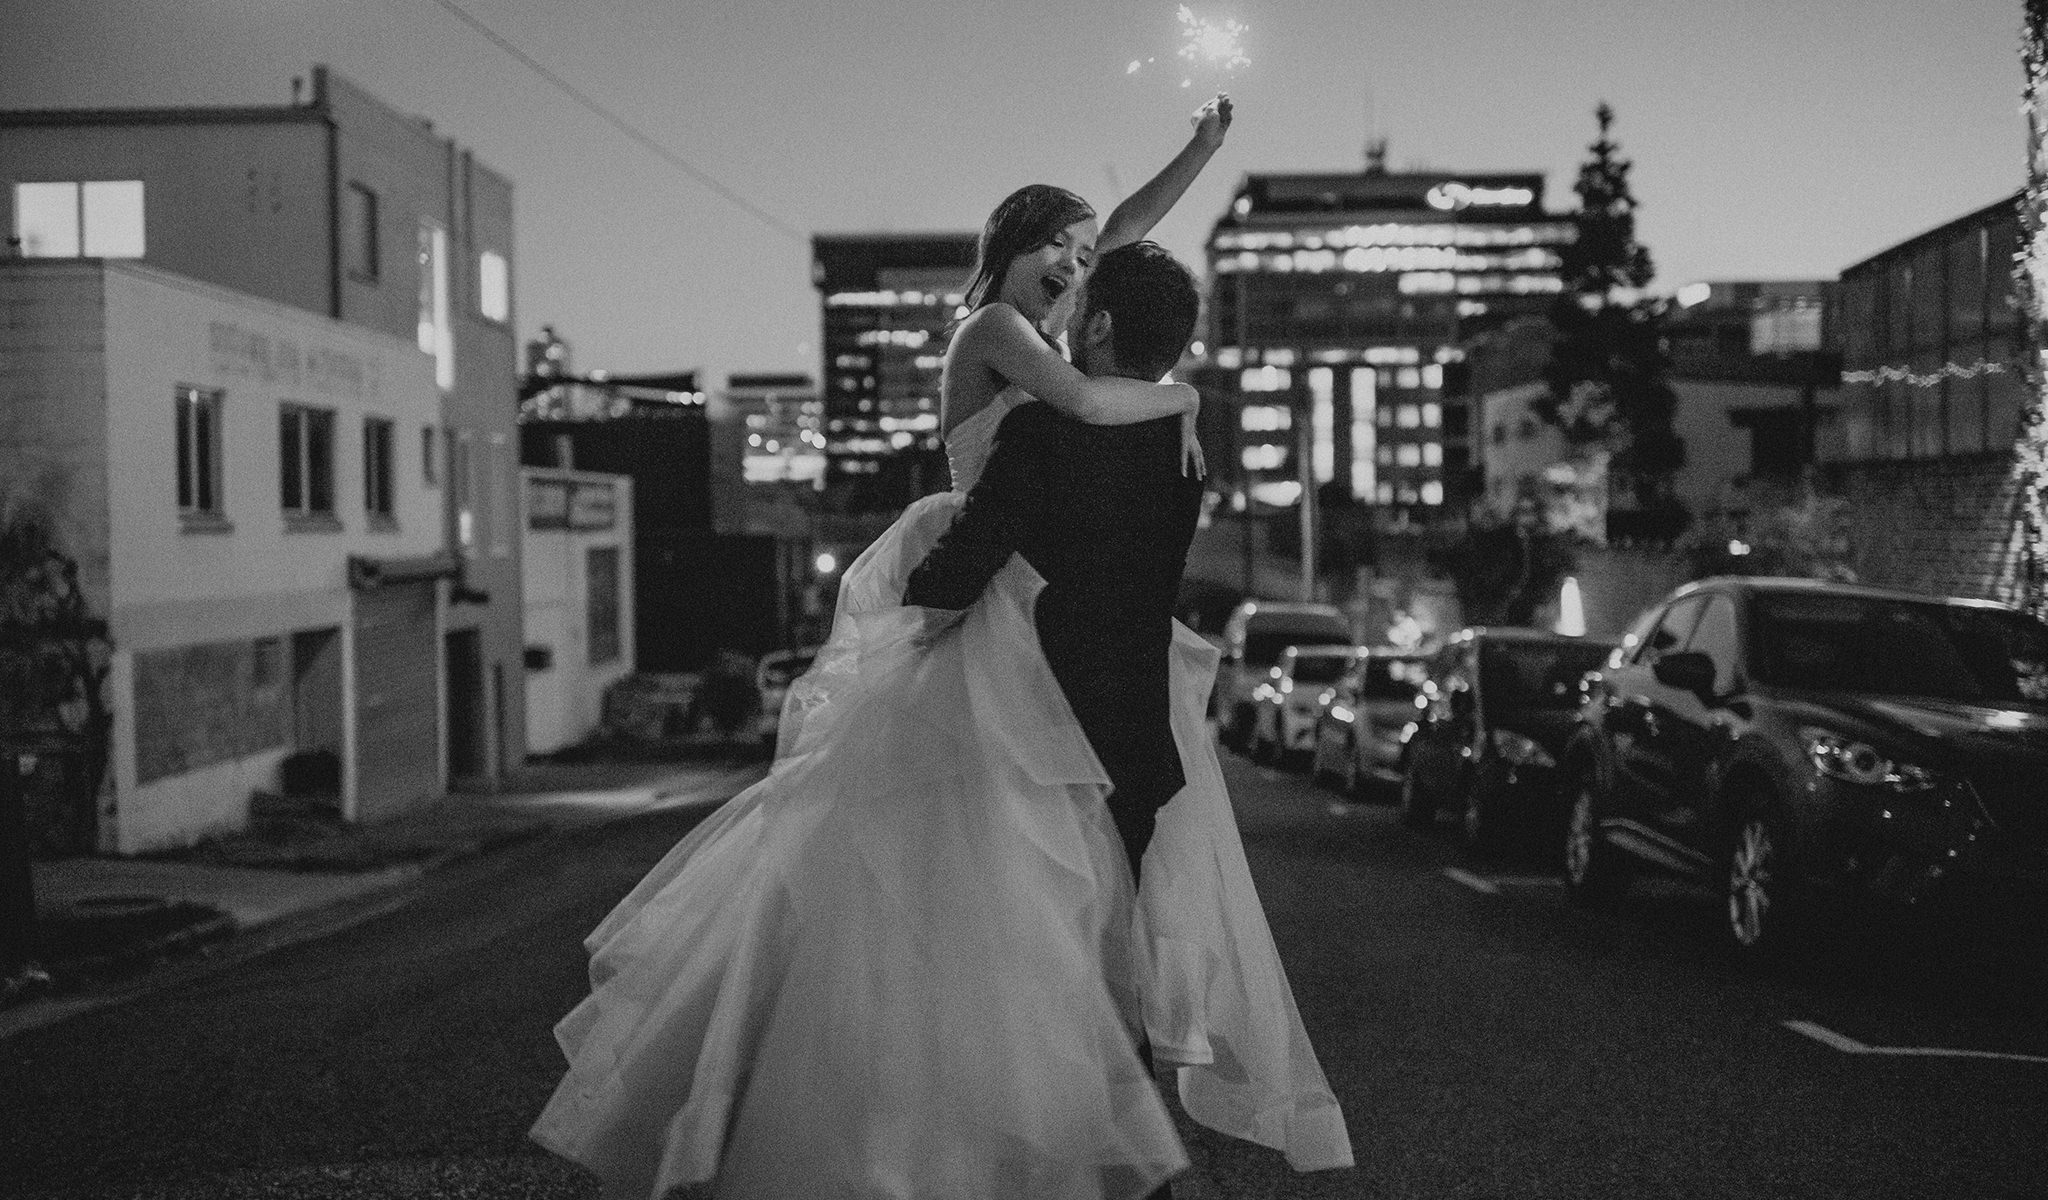 Happy bride with sparkler being lifted by groom